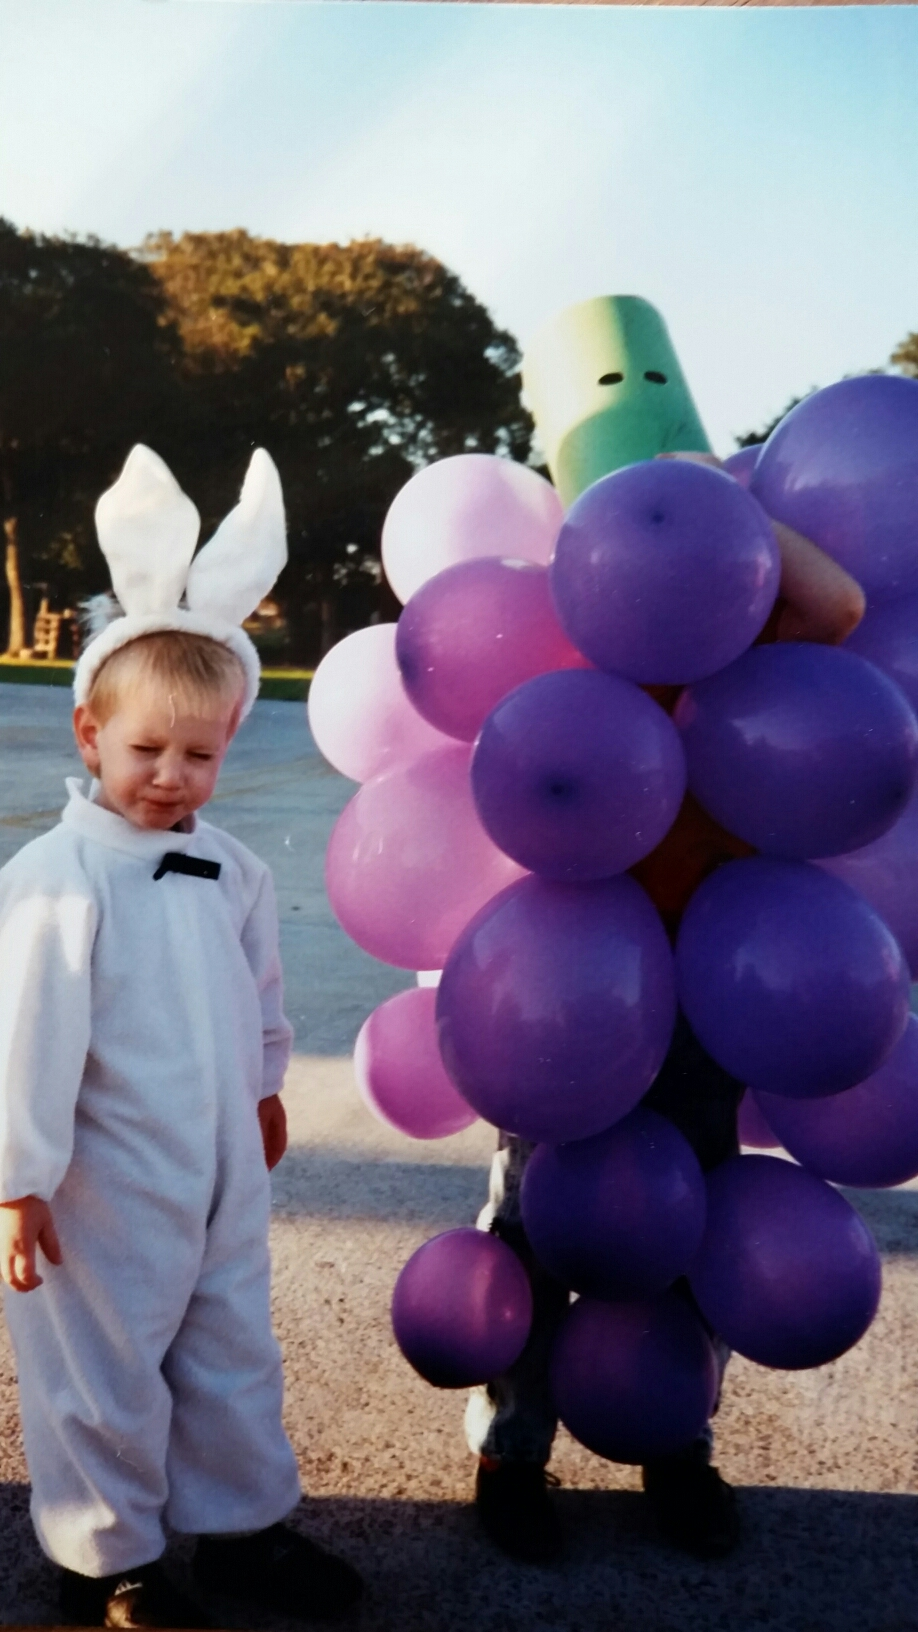 1980-something grapes and my kid brother as a bunny... who even knows.